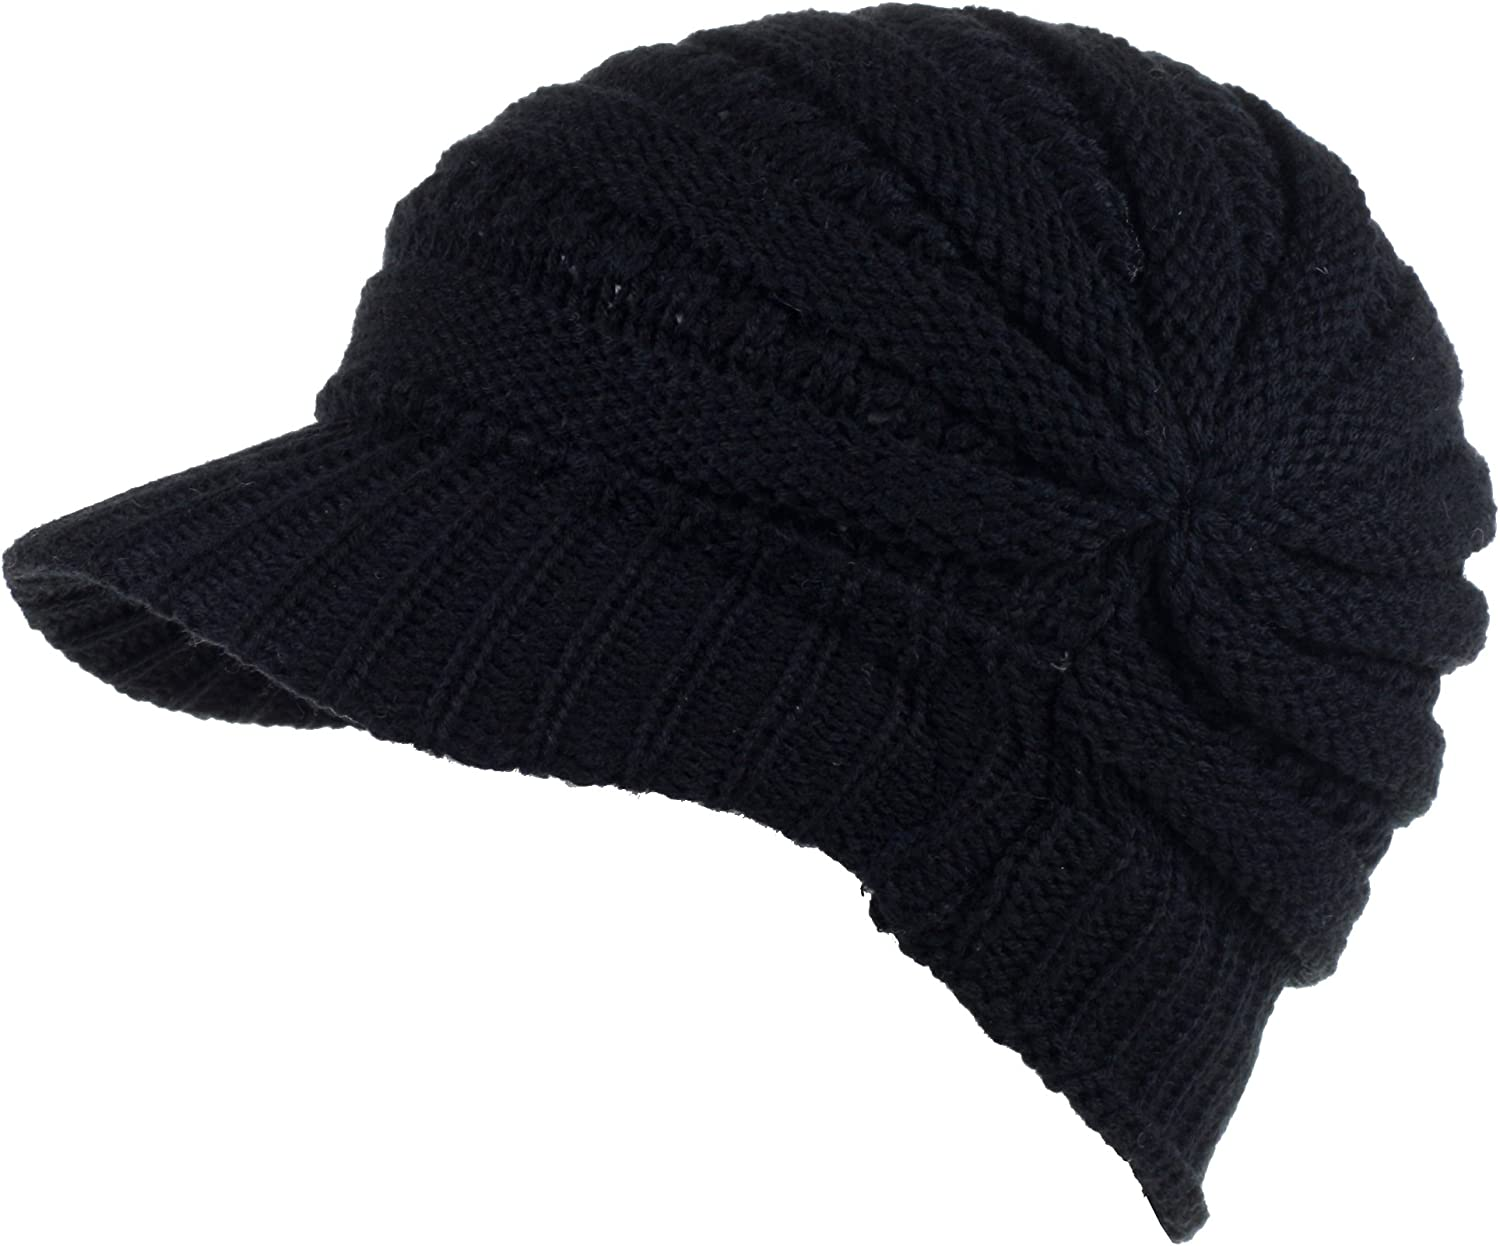 DRY77 Fashion Futuristic Style Look Free shipping / New Viso Hat Beanie with Knitted Ranking TOP12